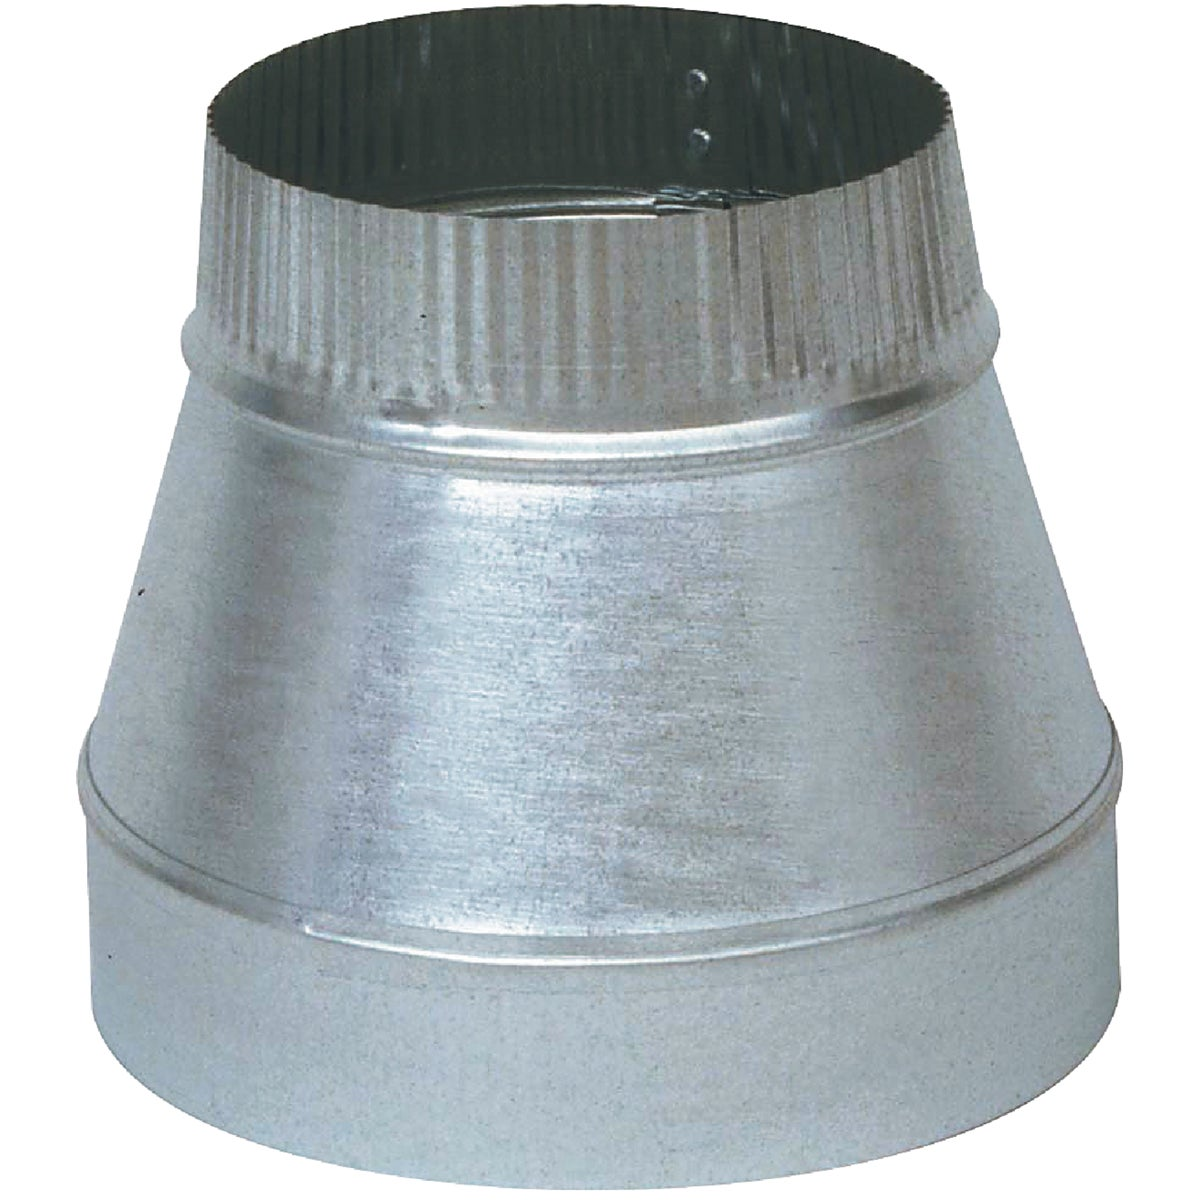 10X8 GALV REDUCER - GV1353 by Imperial Mfg Group